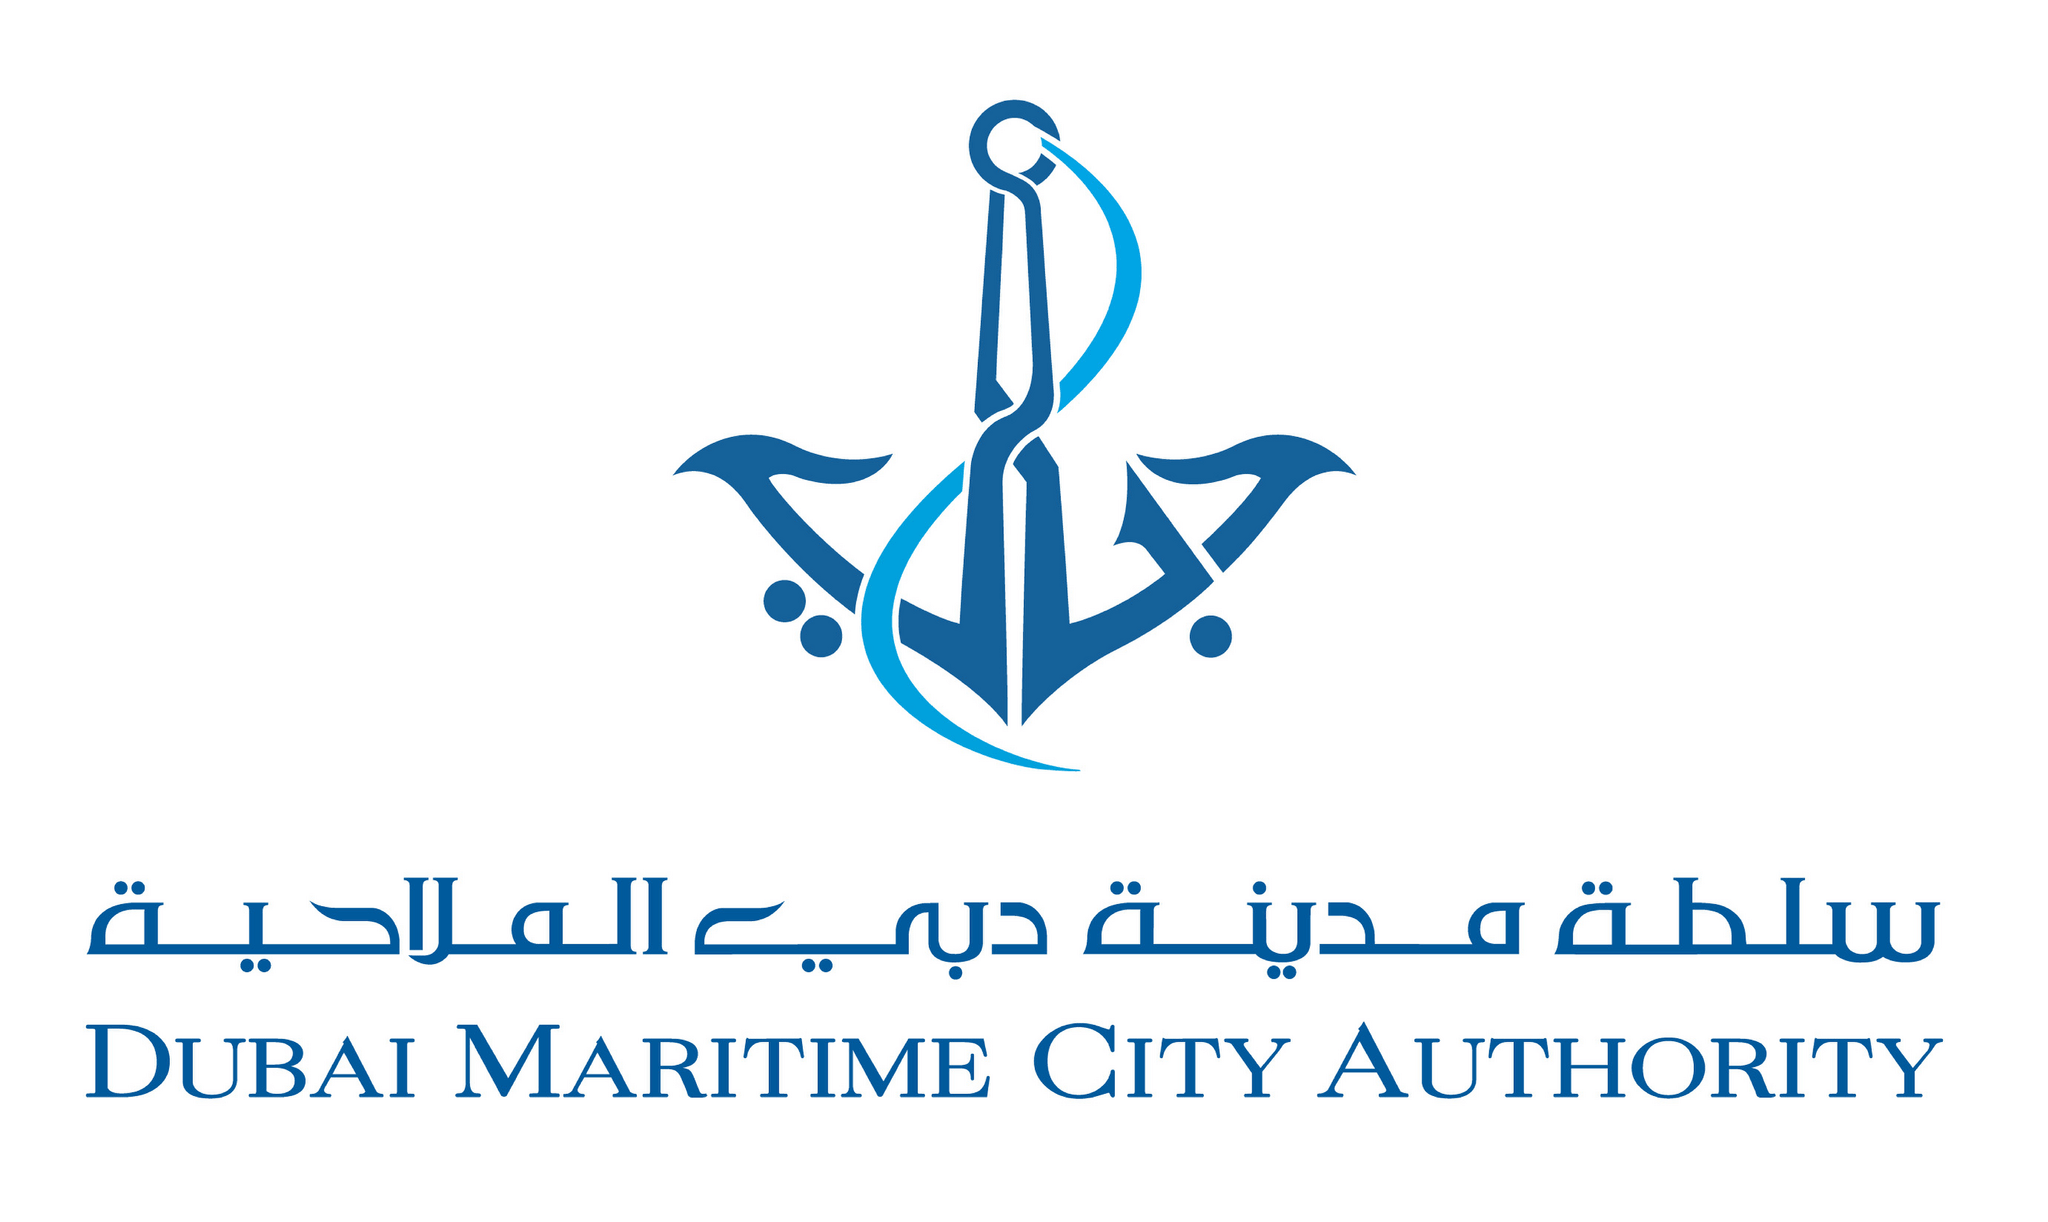 Dubai Maritime City Authority (DMCA)